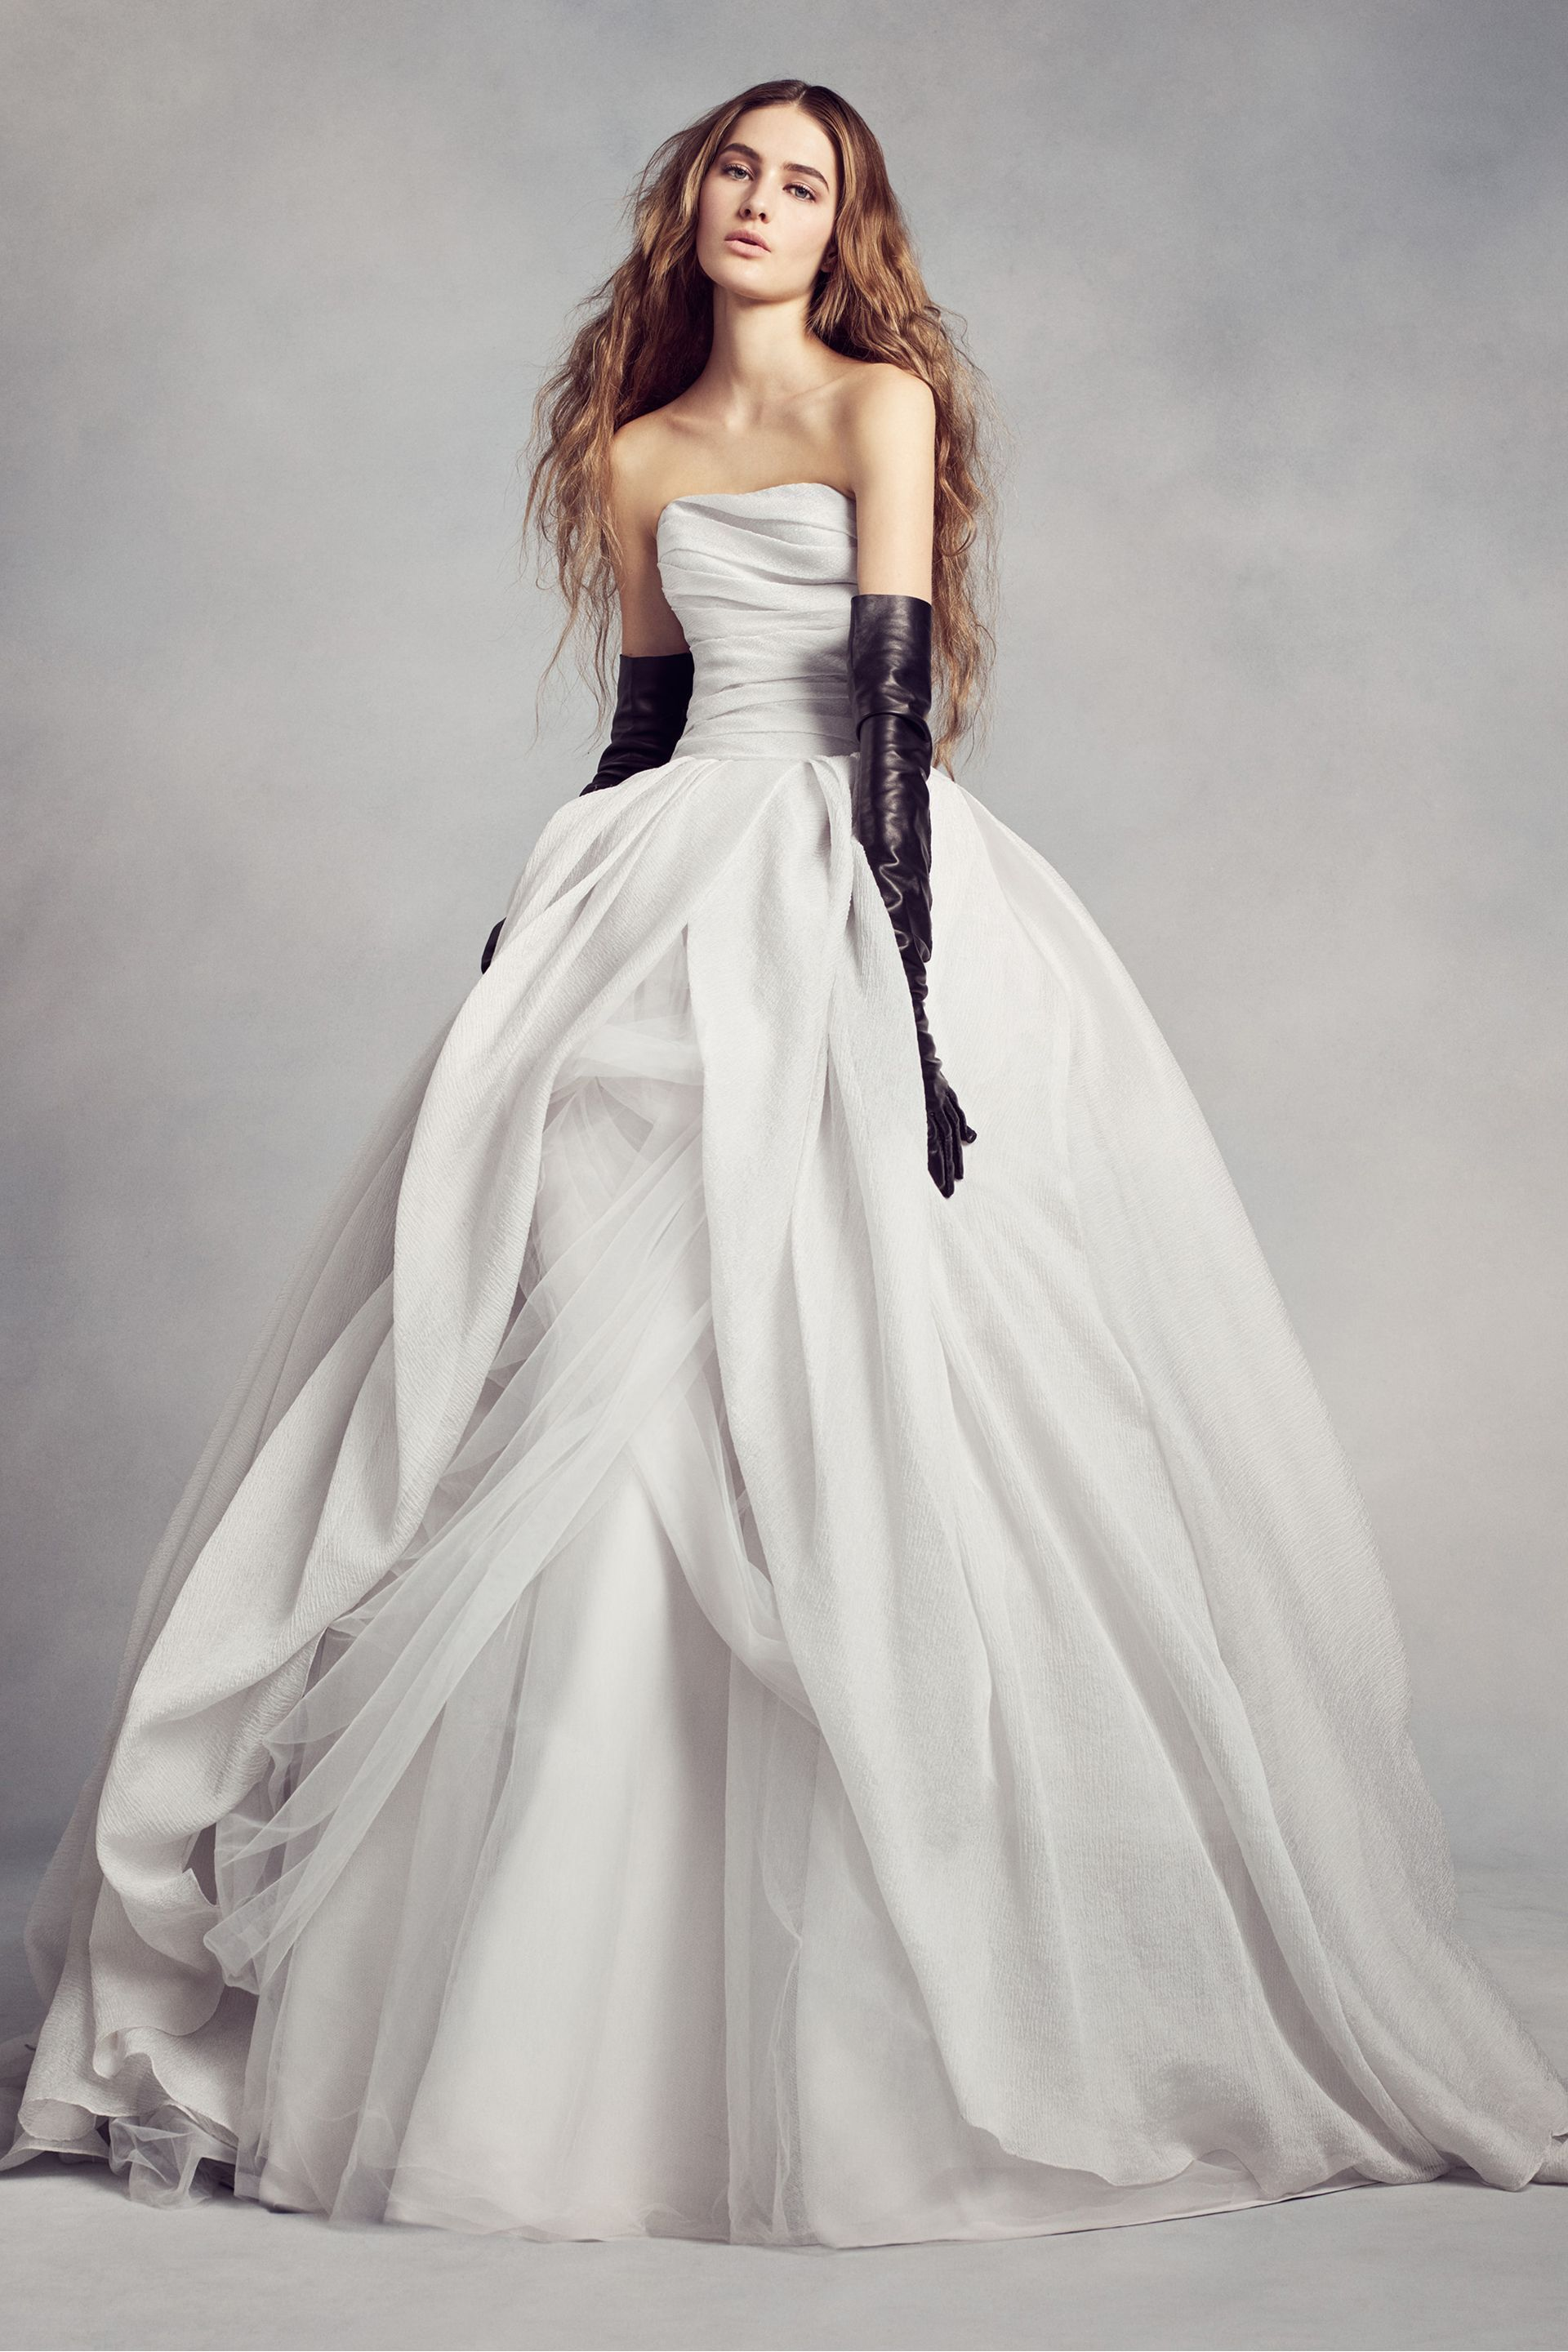 To find the wedding dress of your dreams here are pieces perfect